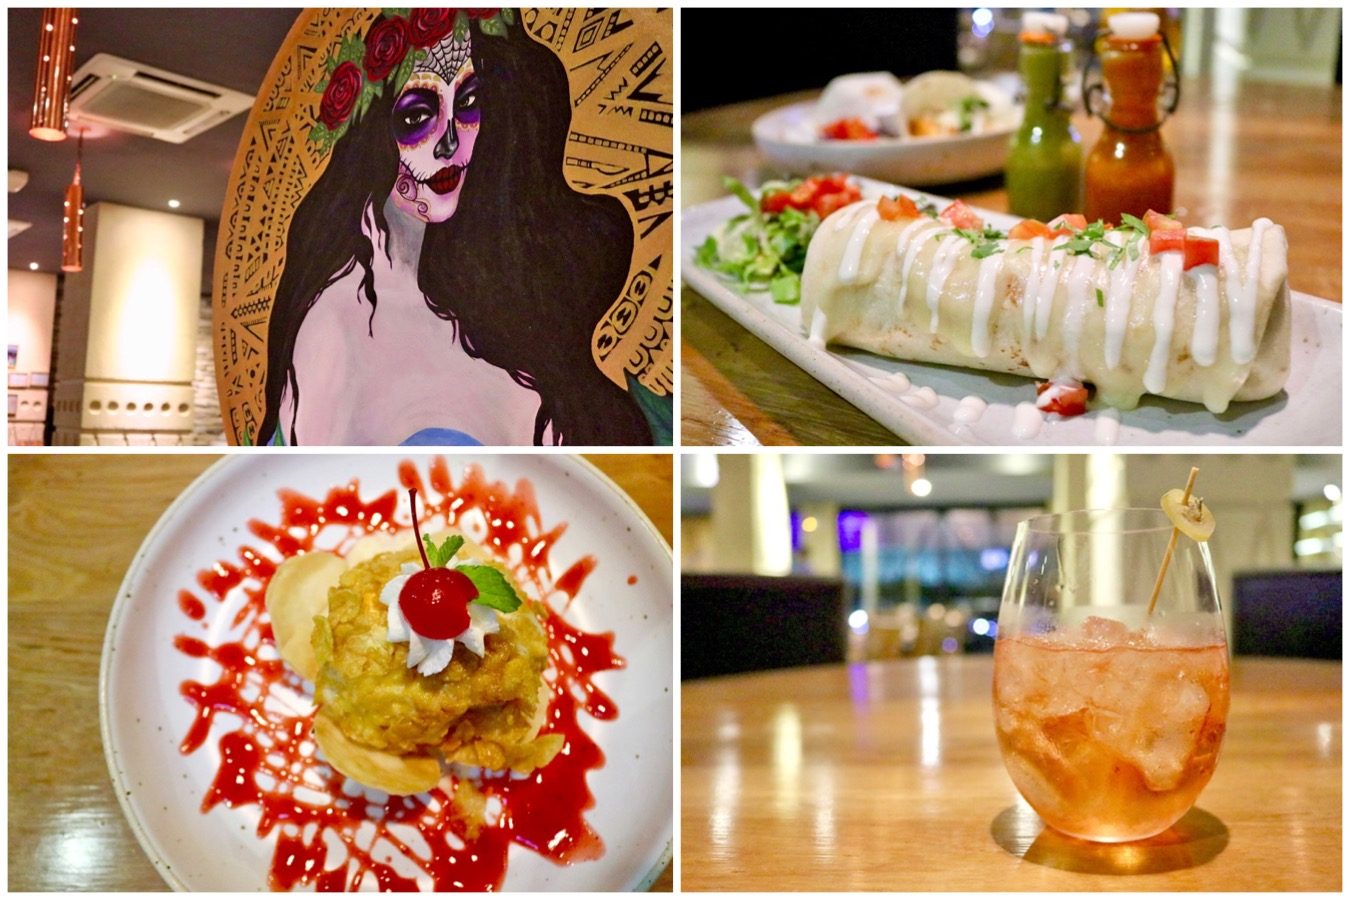 The Mexican - Tex-Mex Cuisine In The Heart Of Bangkok. An Authentic Cantina and Comedor Experience